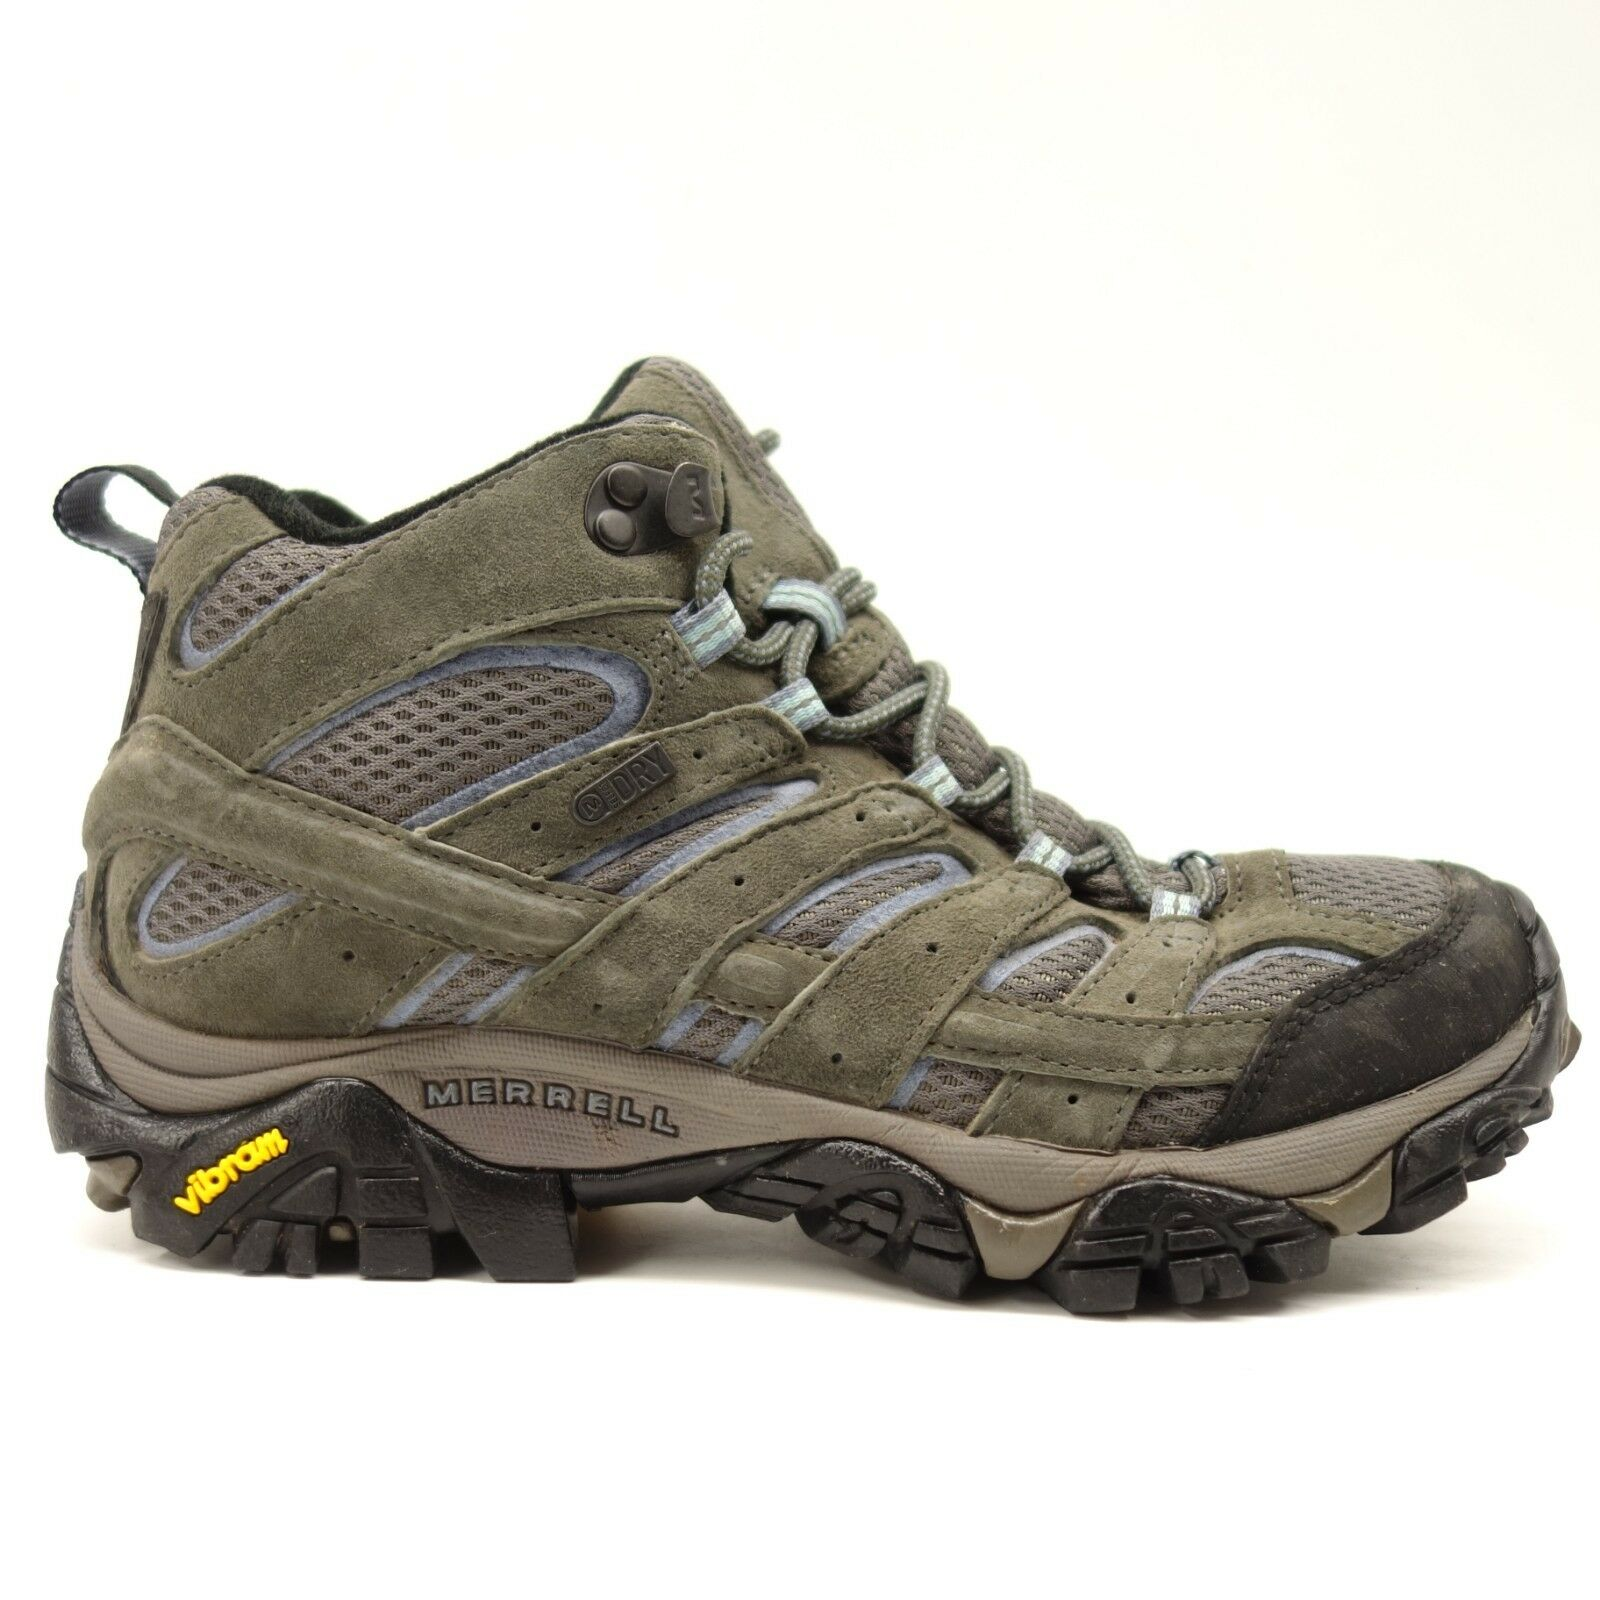 Merrell Womens Moab 2 Granite bluee Mid Hiking Waterproof Athletic Boots Size 7